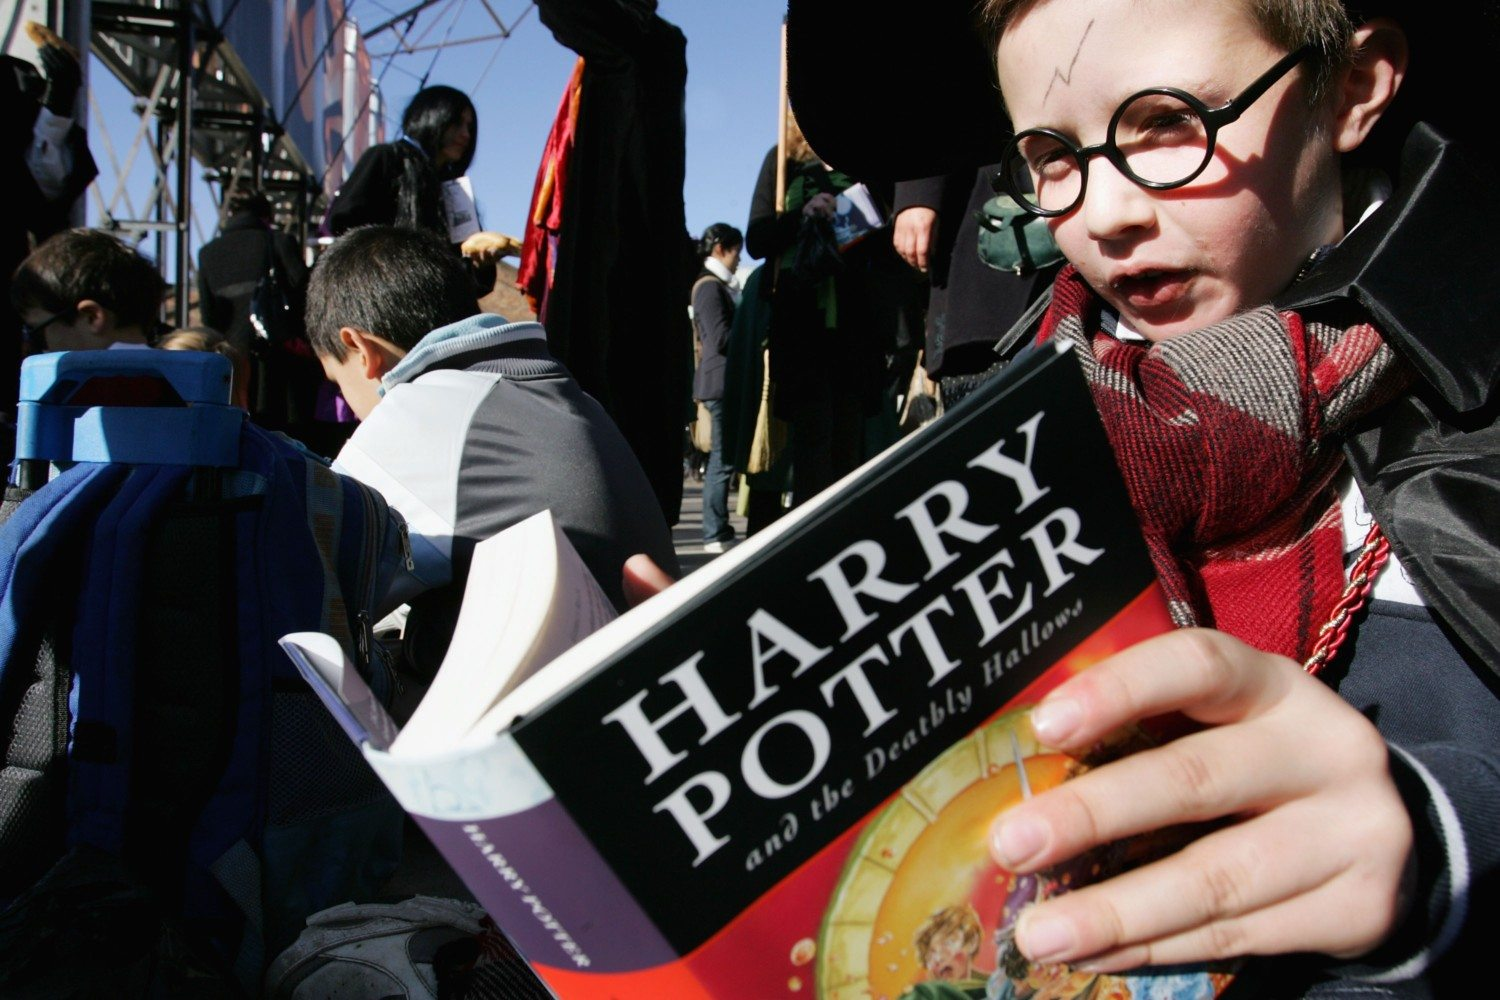 Old-harry-potter-book-worth-7500/